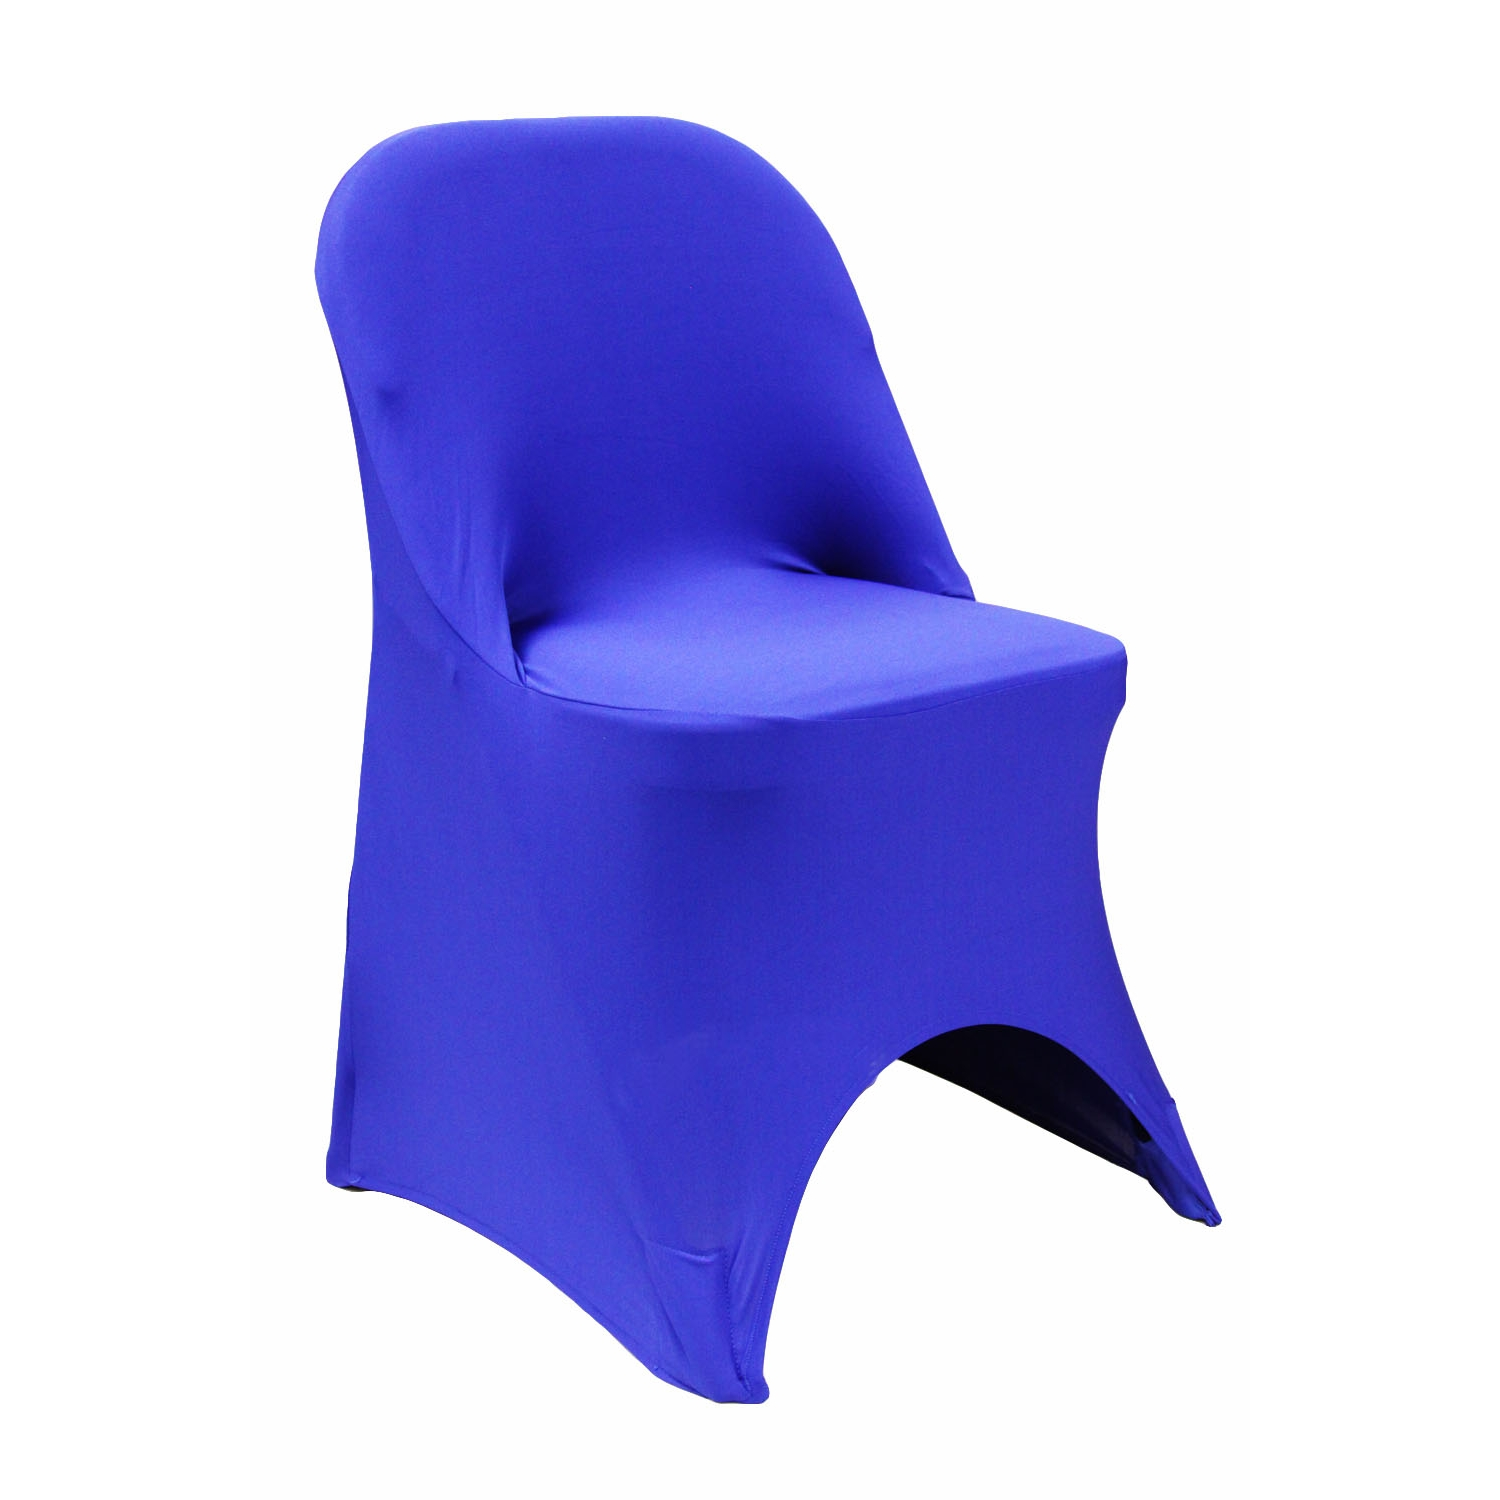 royal blue chairs eames 670 lounge chair folding spandex cover at cv linens